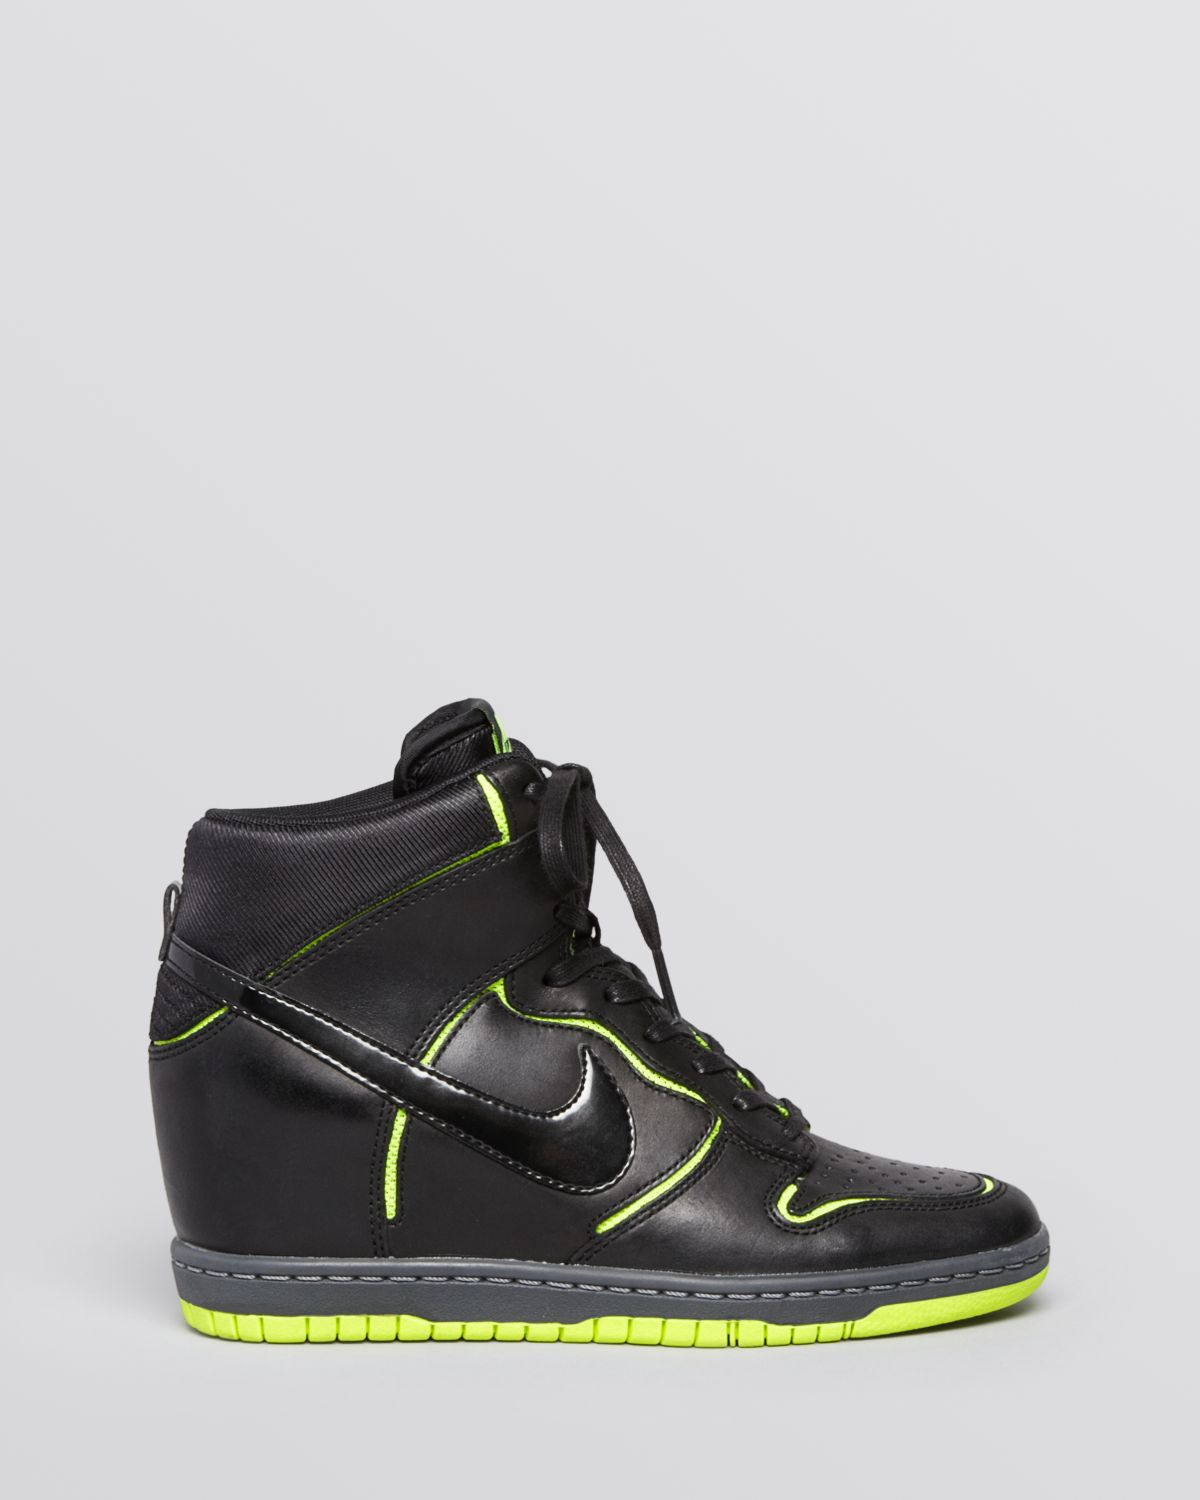 3538c83dacaf7c Lyst - Nike Lace Up High Top Wedge Sneakers - Women S Dunk Sky Hi ...